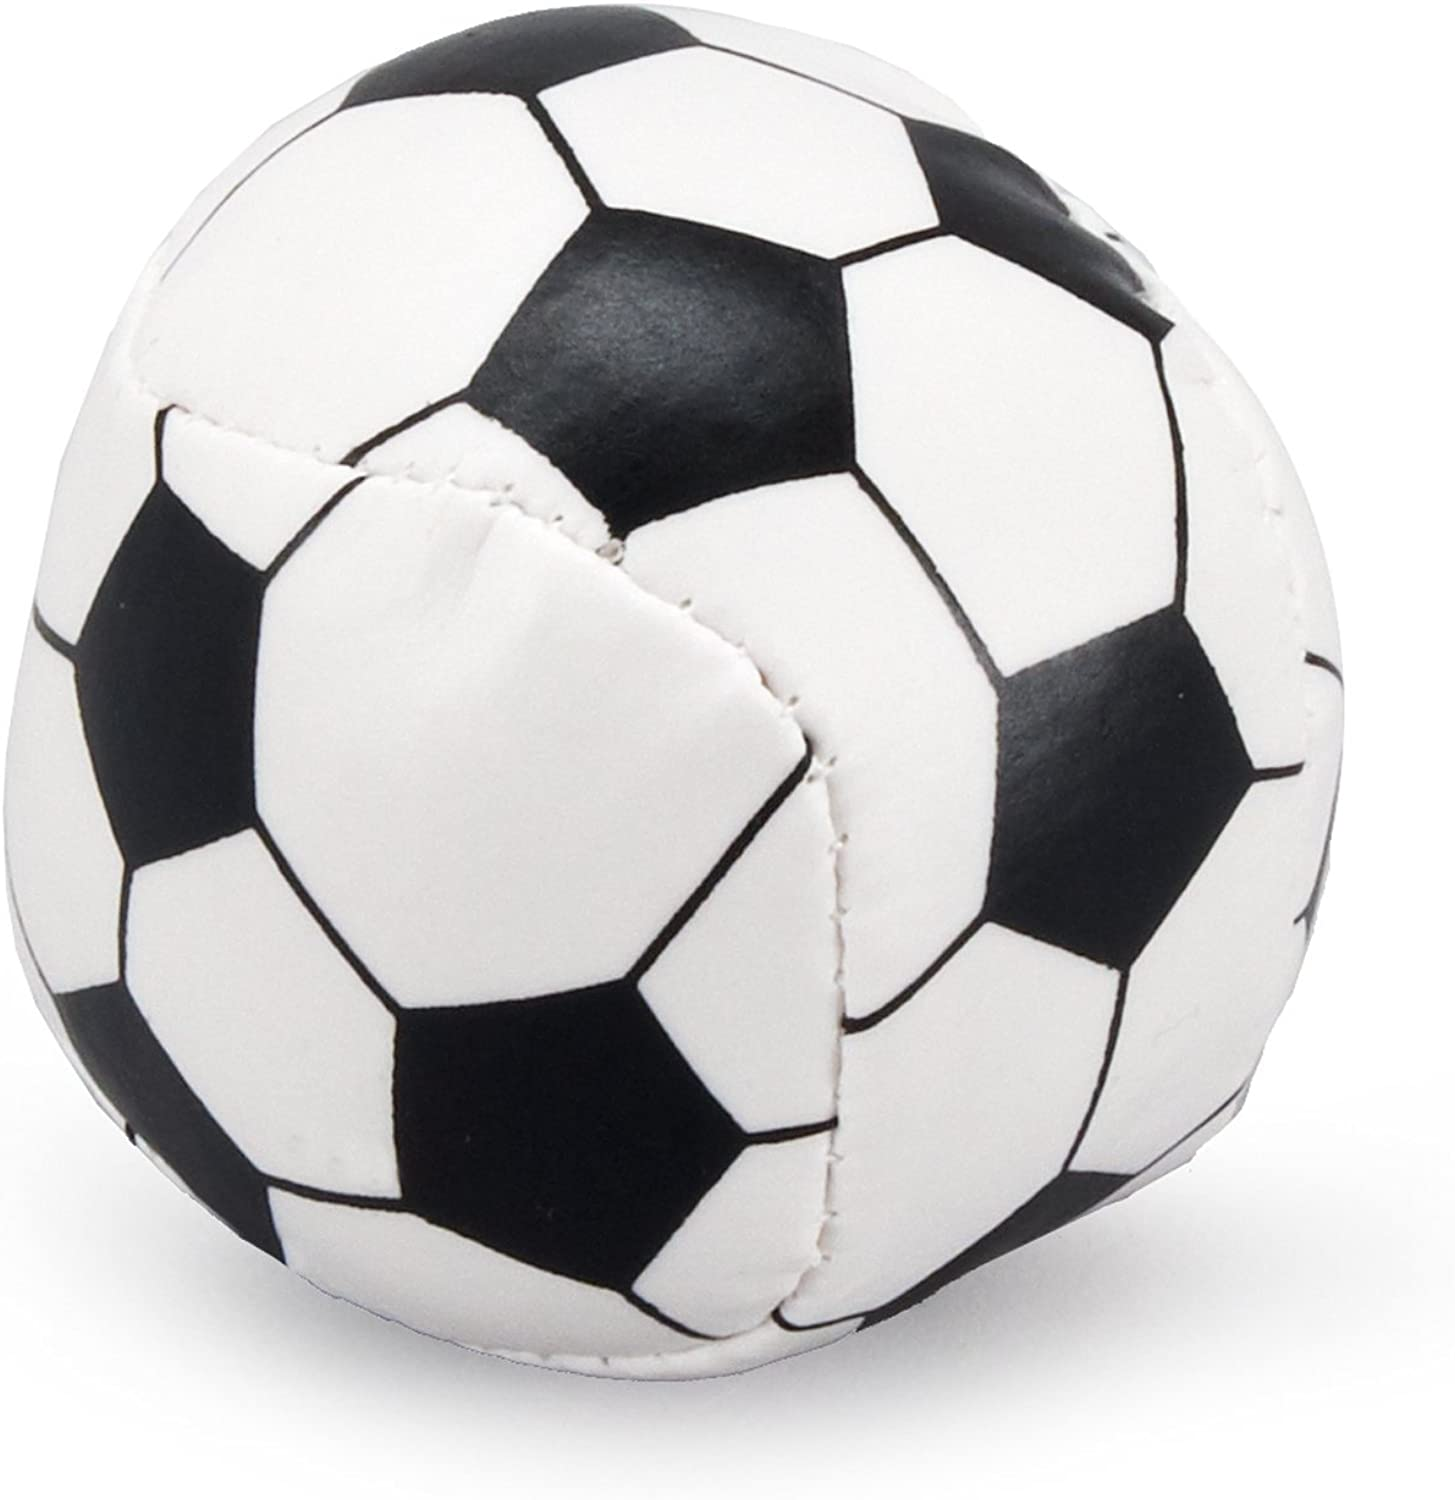 The Sourcing Group Soft Soccer Balls (12 Count)